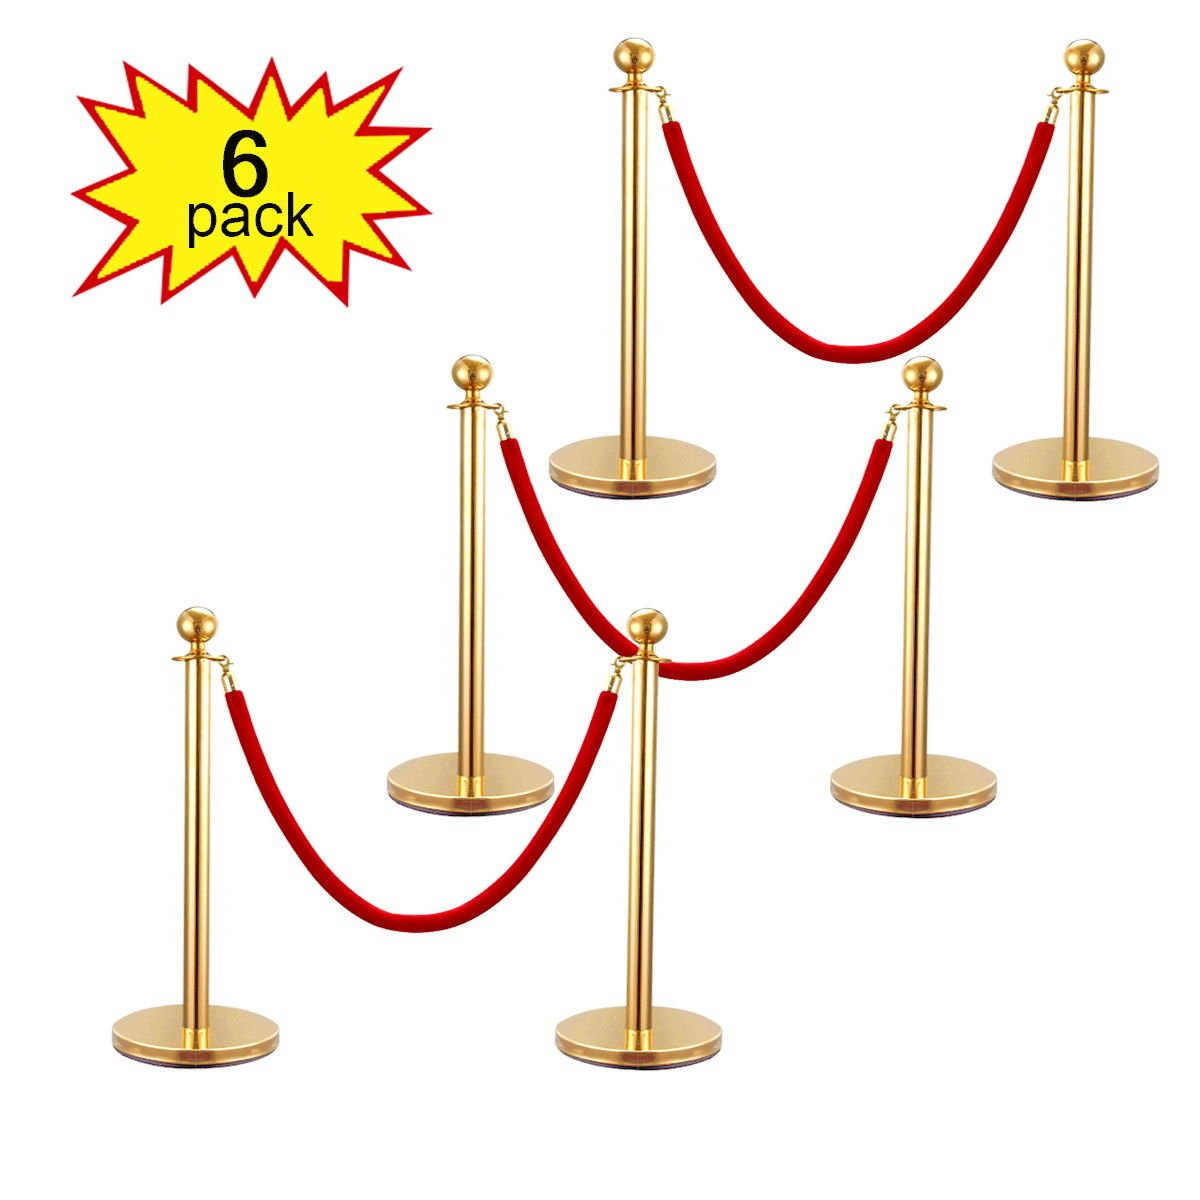 Pack of 6 Ball Round Top Stanchion Posts Set Queue Safety Barrier with Red Velvet Ropes, Gold